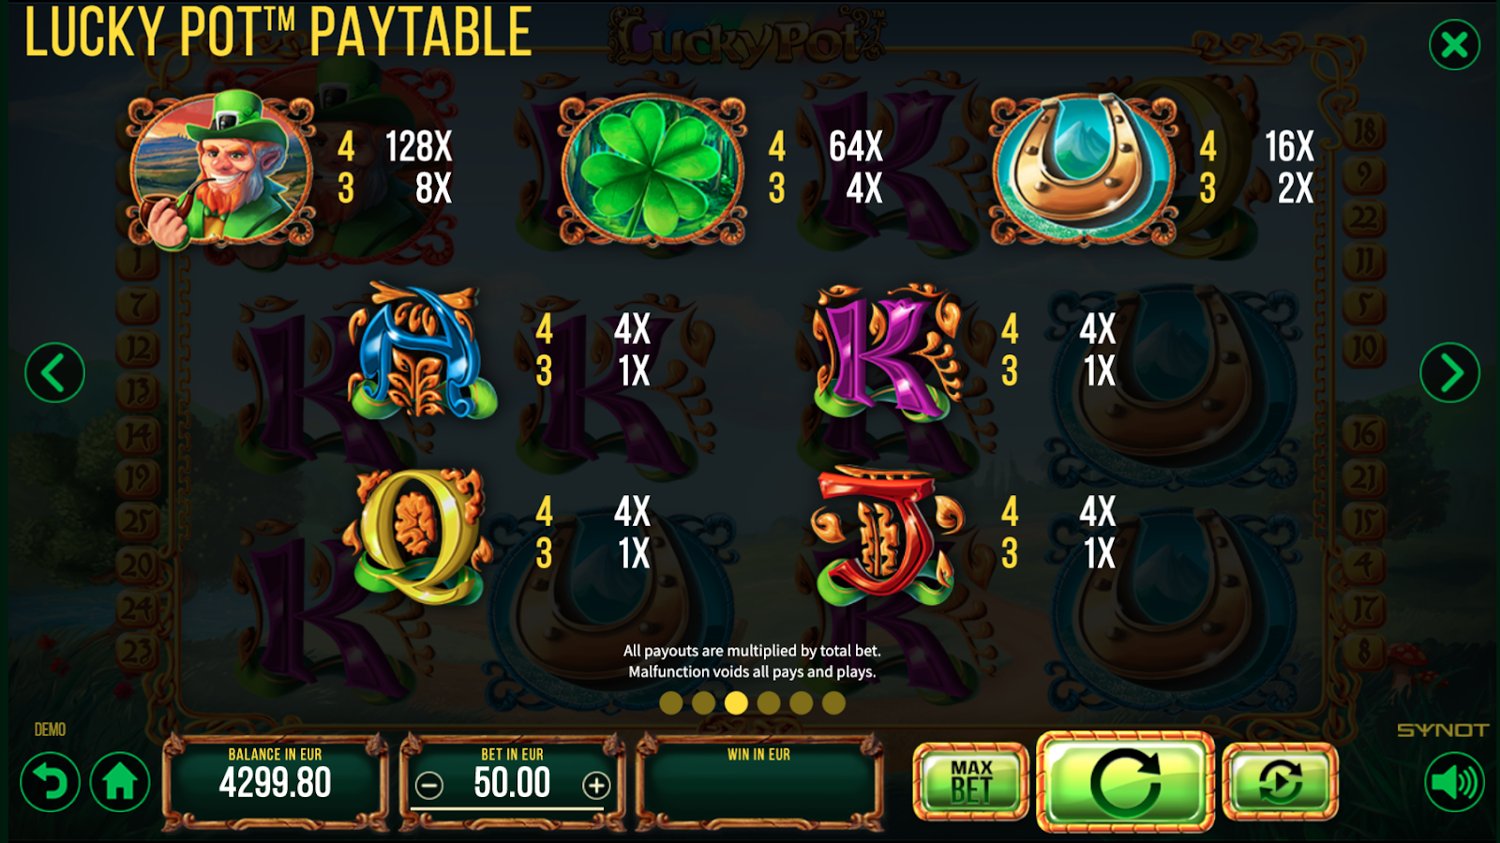 Lucky Pot paytable